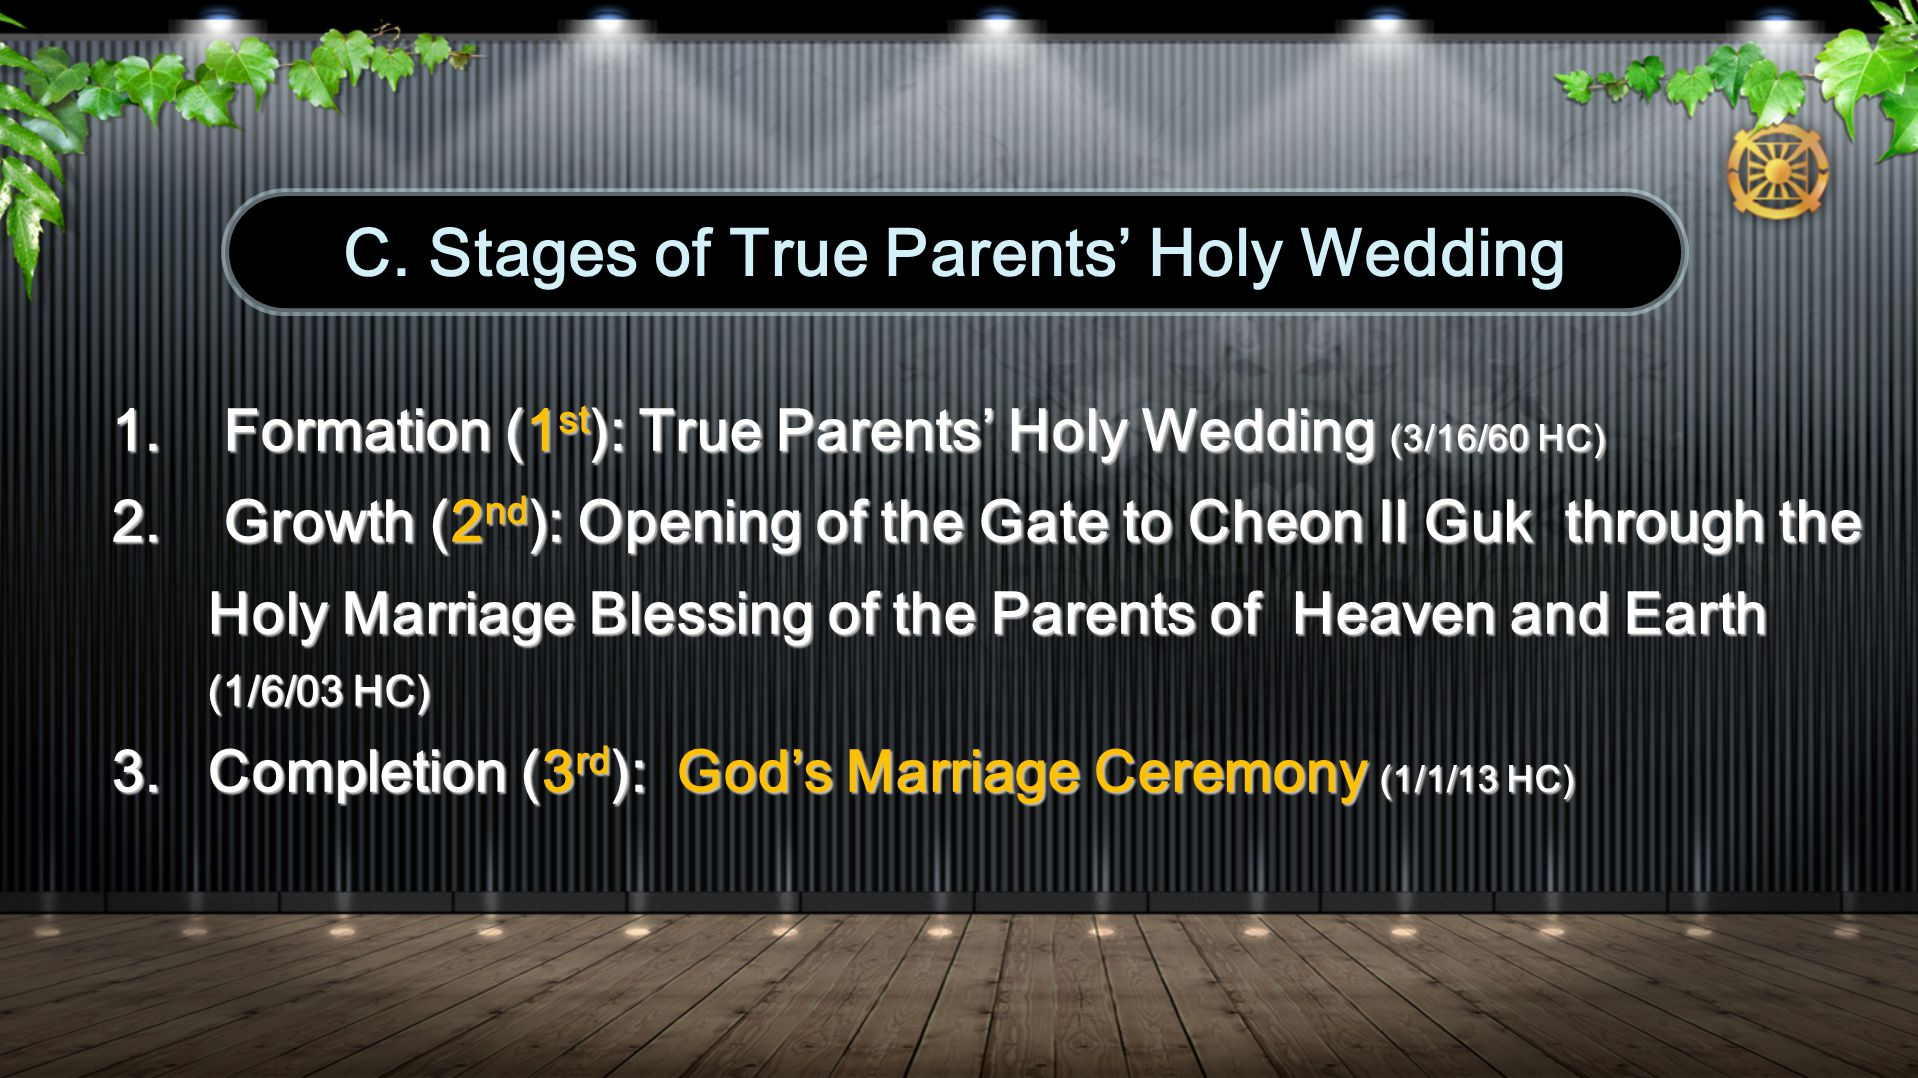 1. Formation (1 st ): True Parents Holy Wedding (3/16/60 HC) 2.